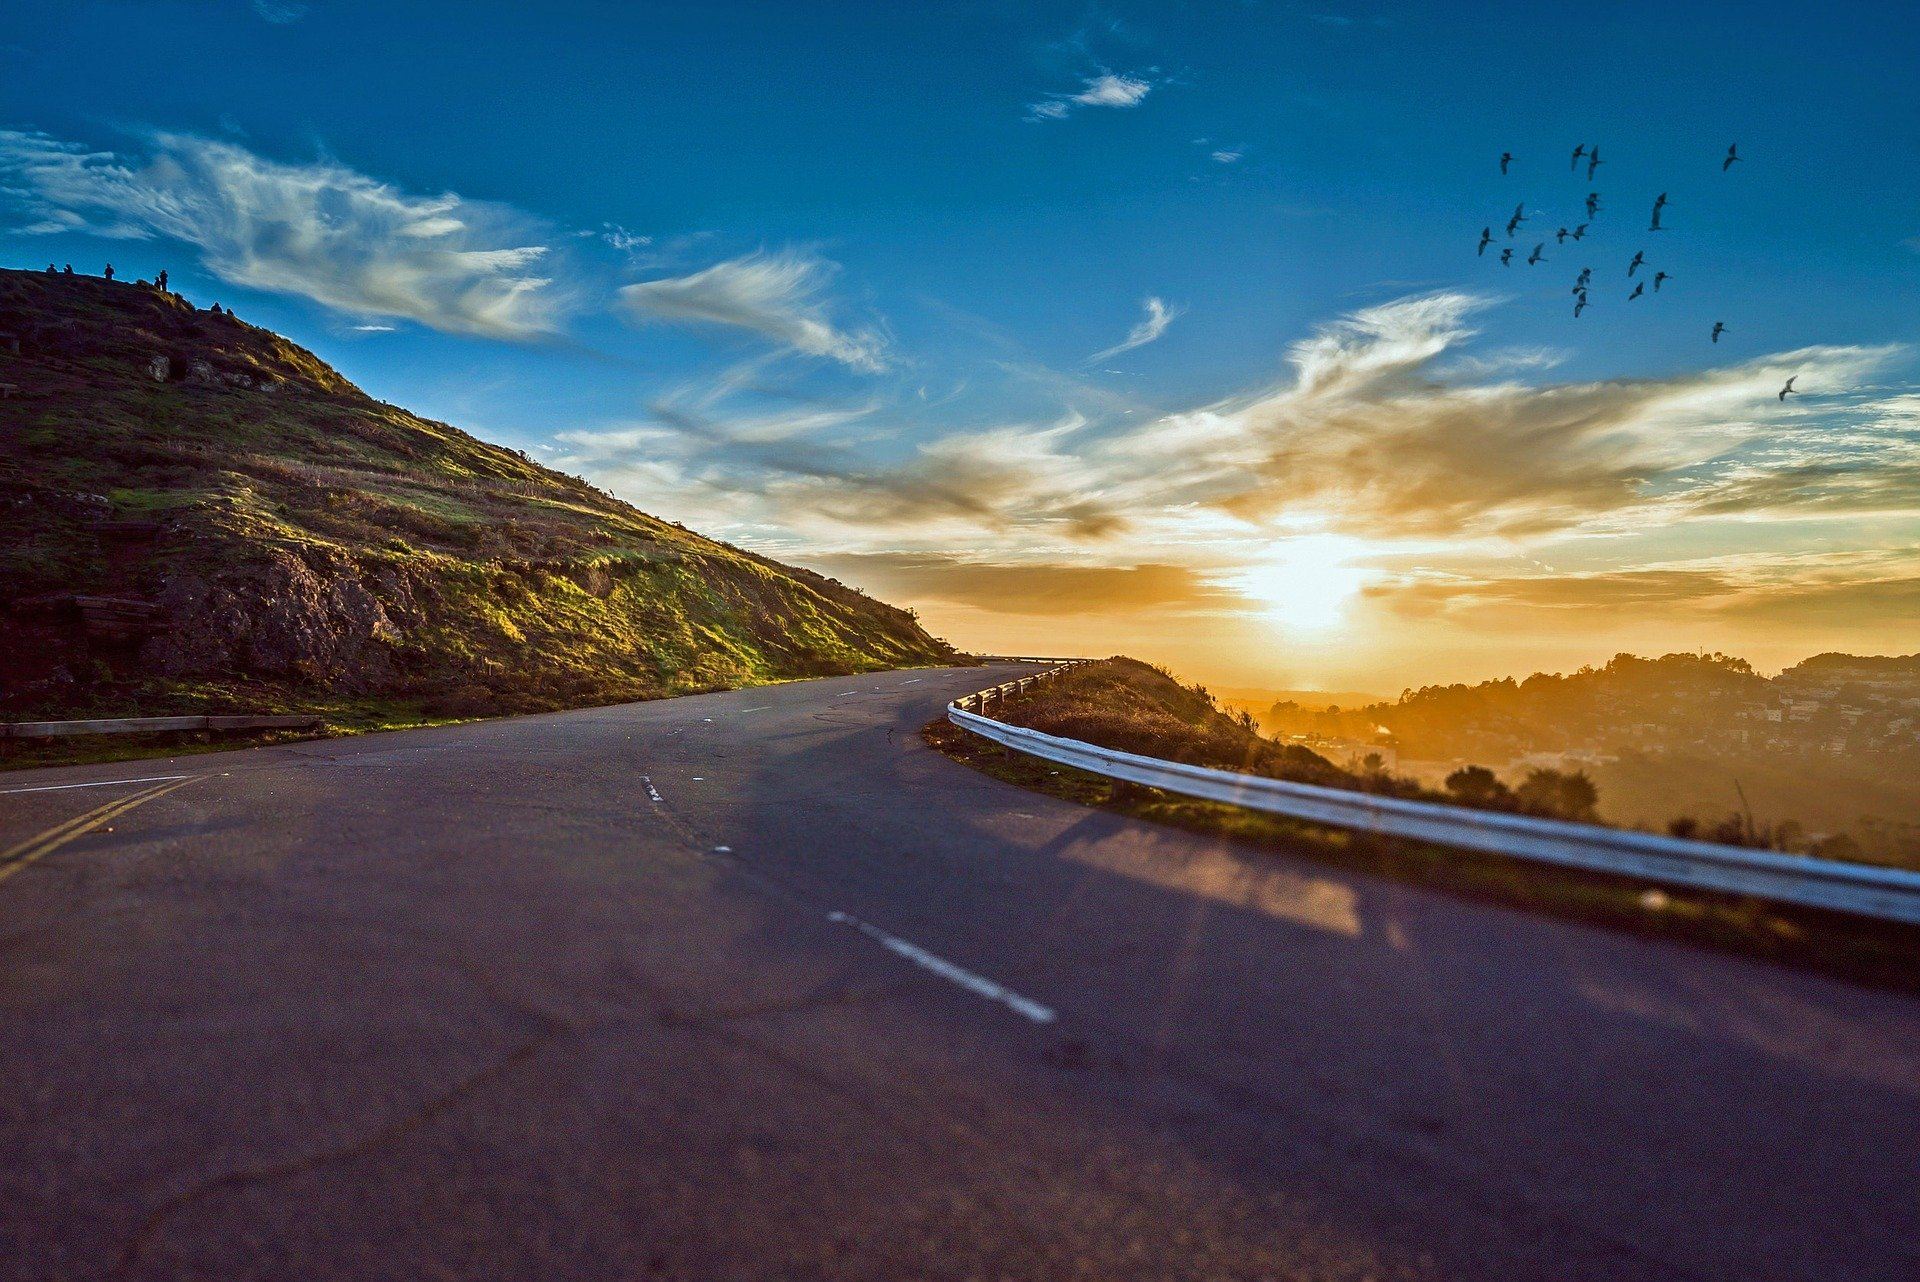 Picture of a winding road taken at sunrise.   Source: Pixabay.